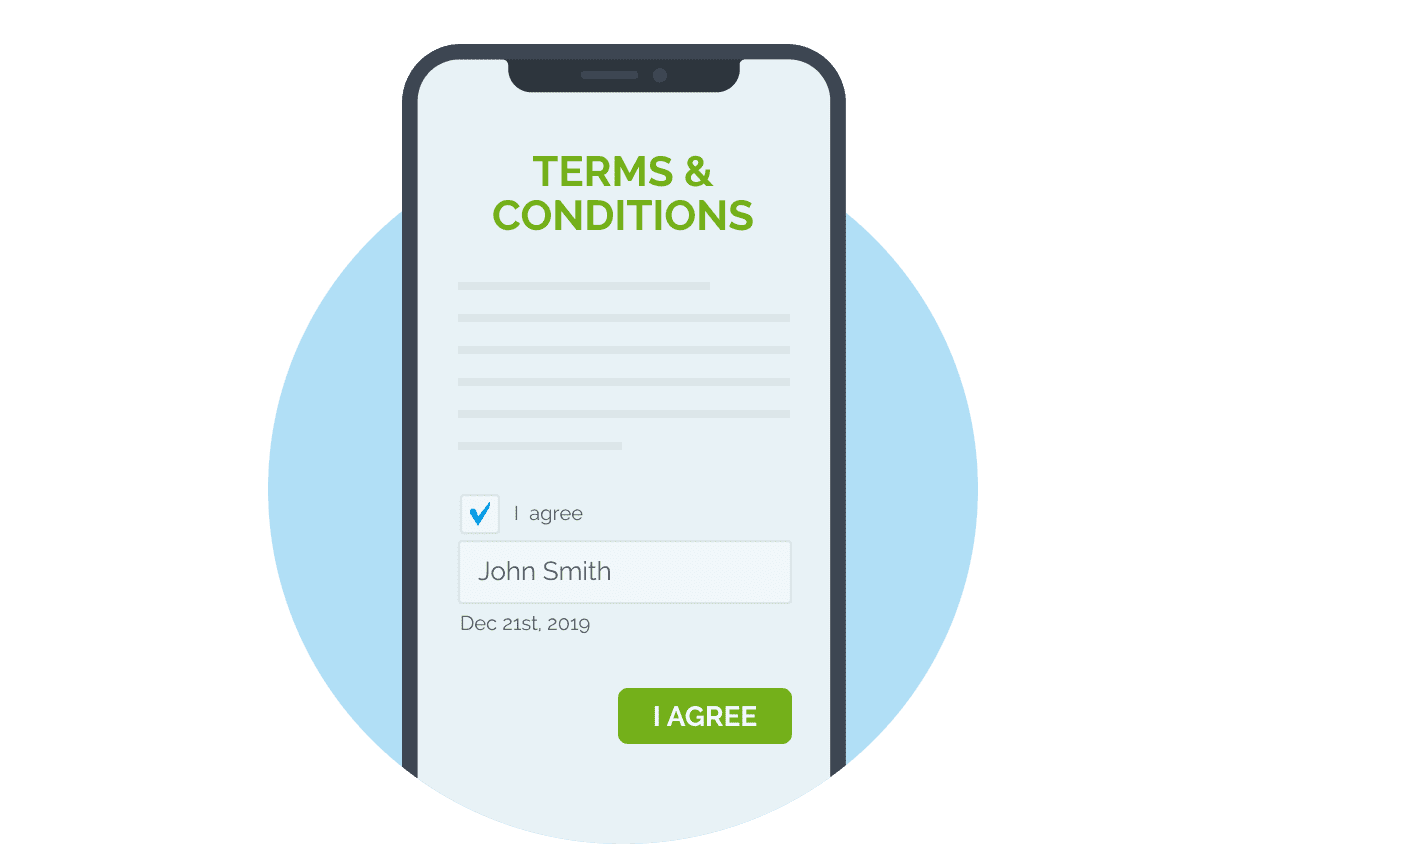 e-sign documents online